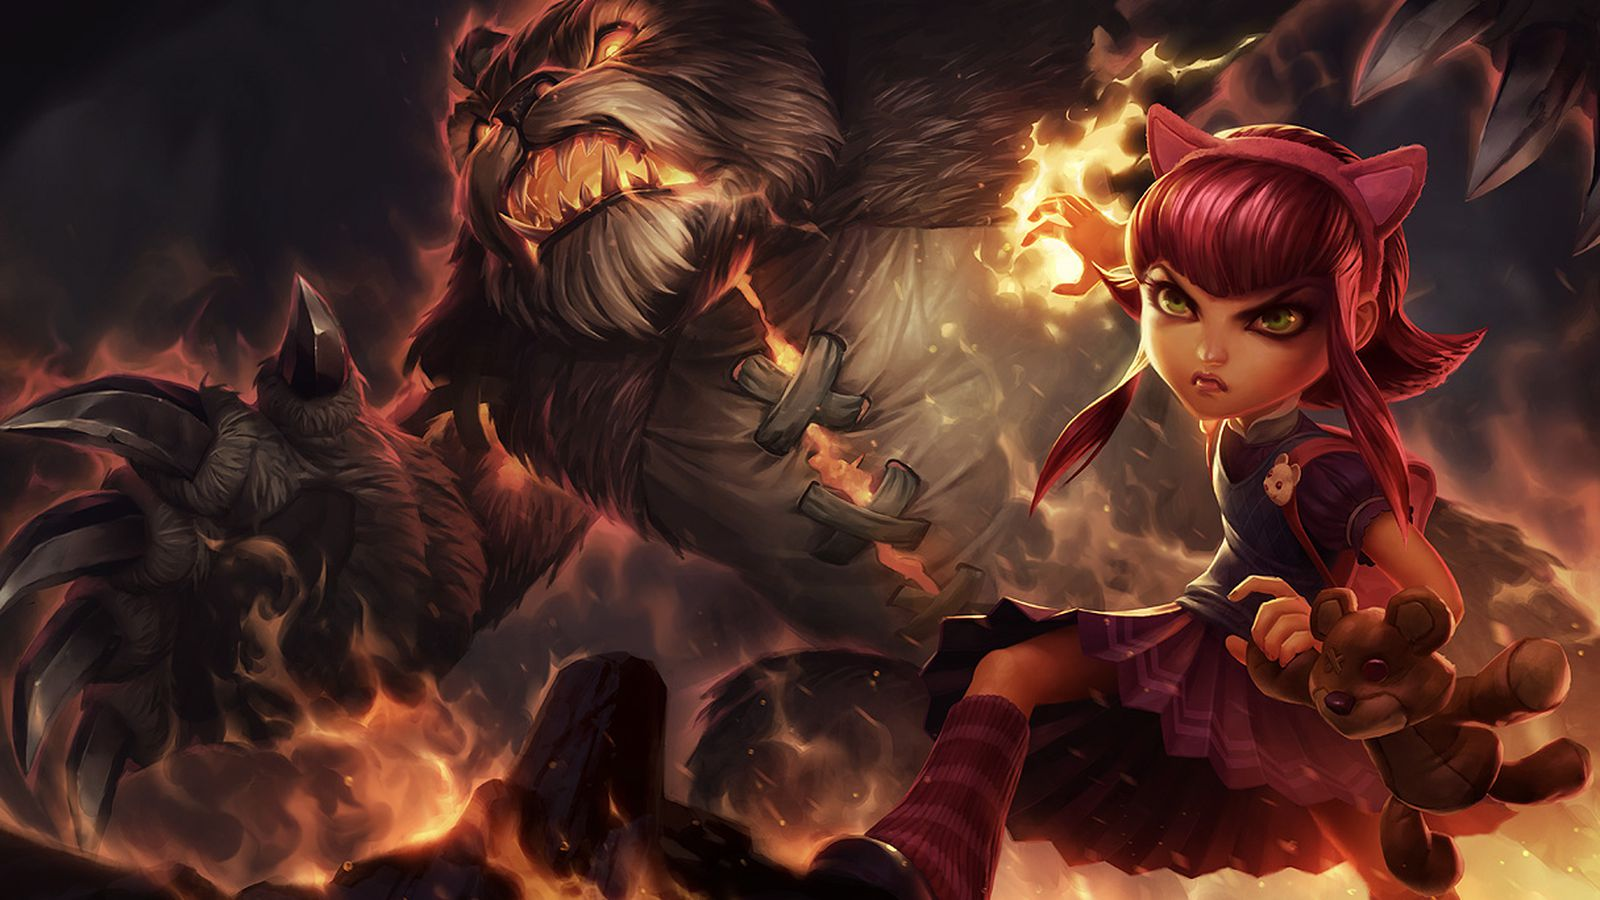 New to League of Legends? Get started with these champions - The Rift Herald